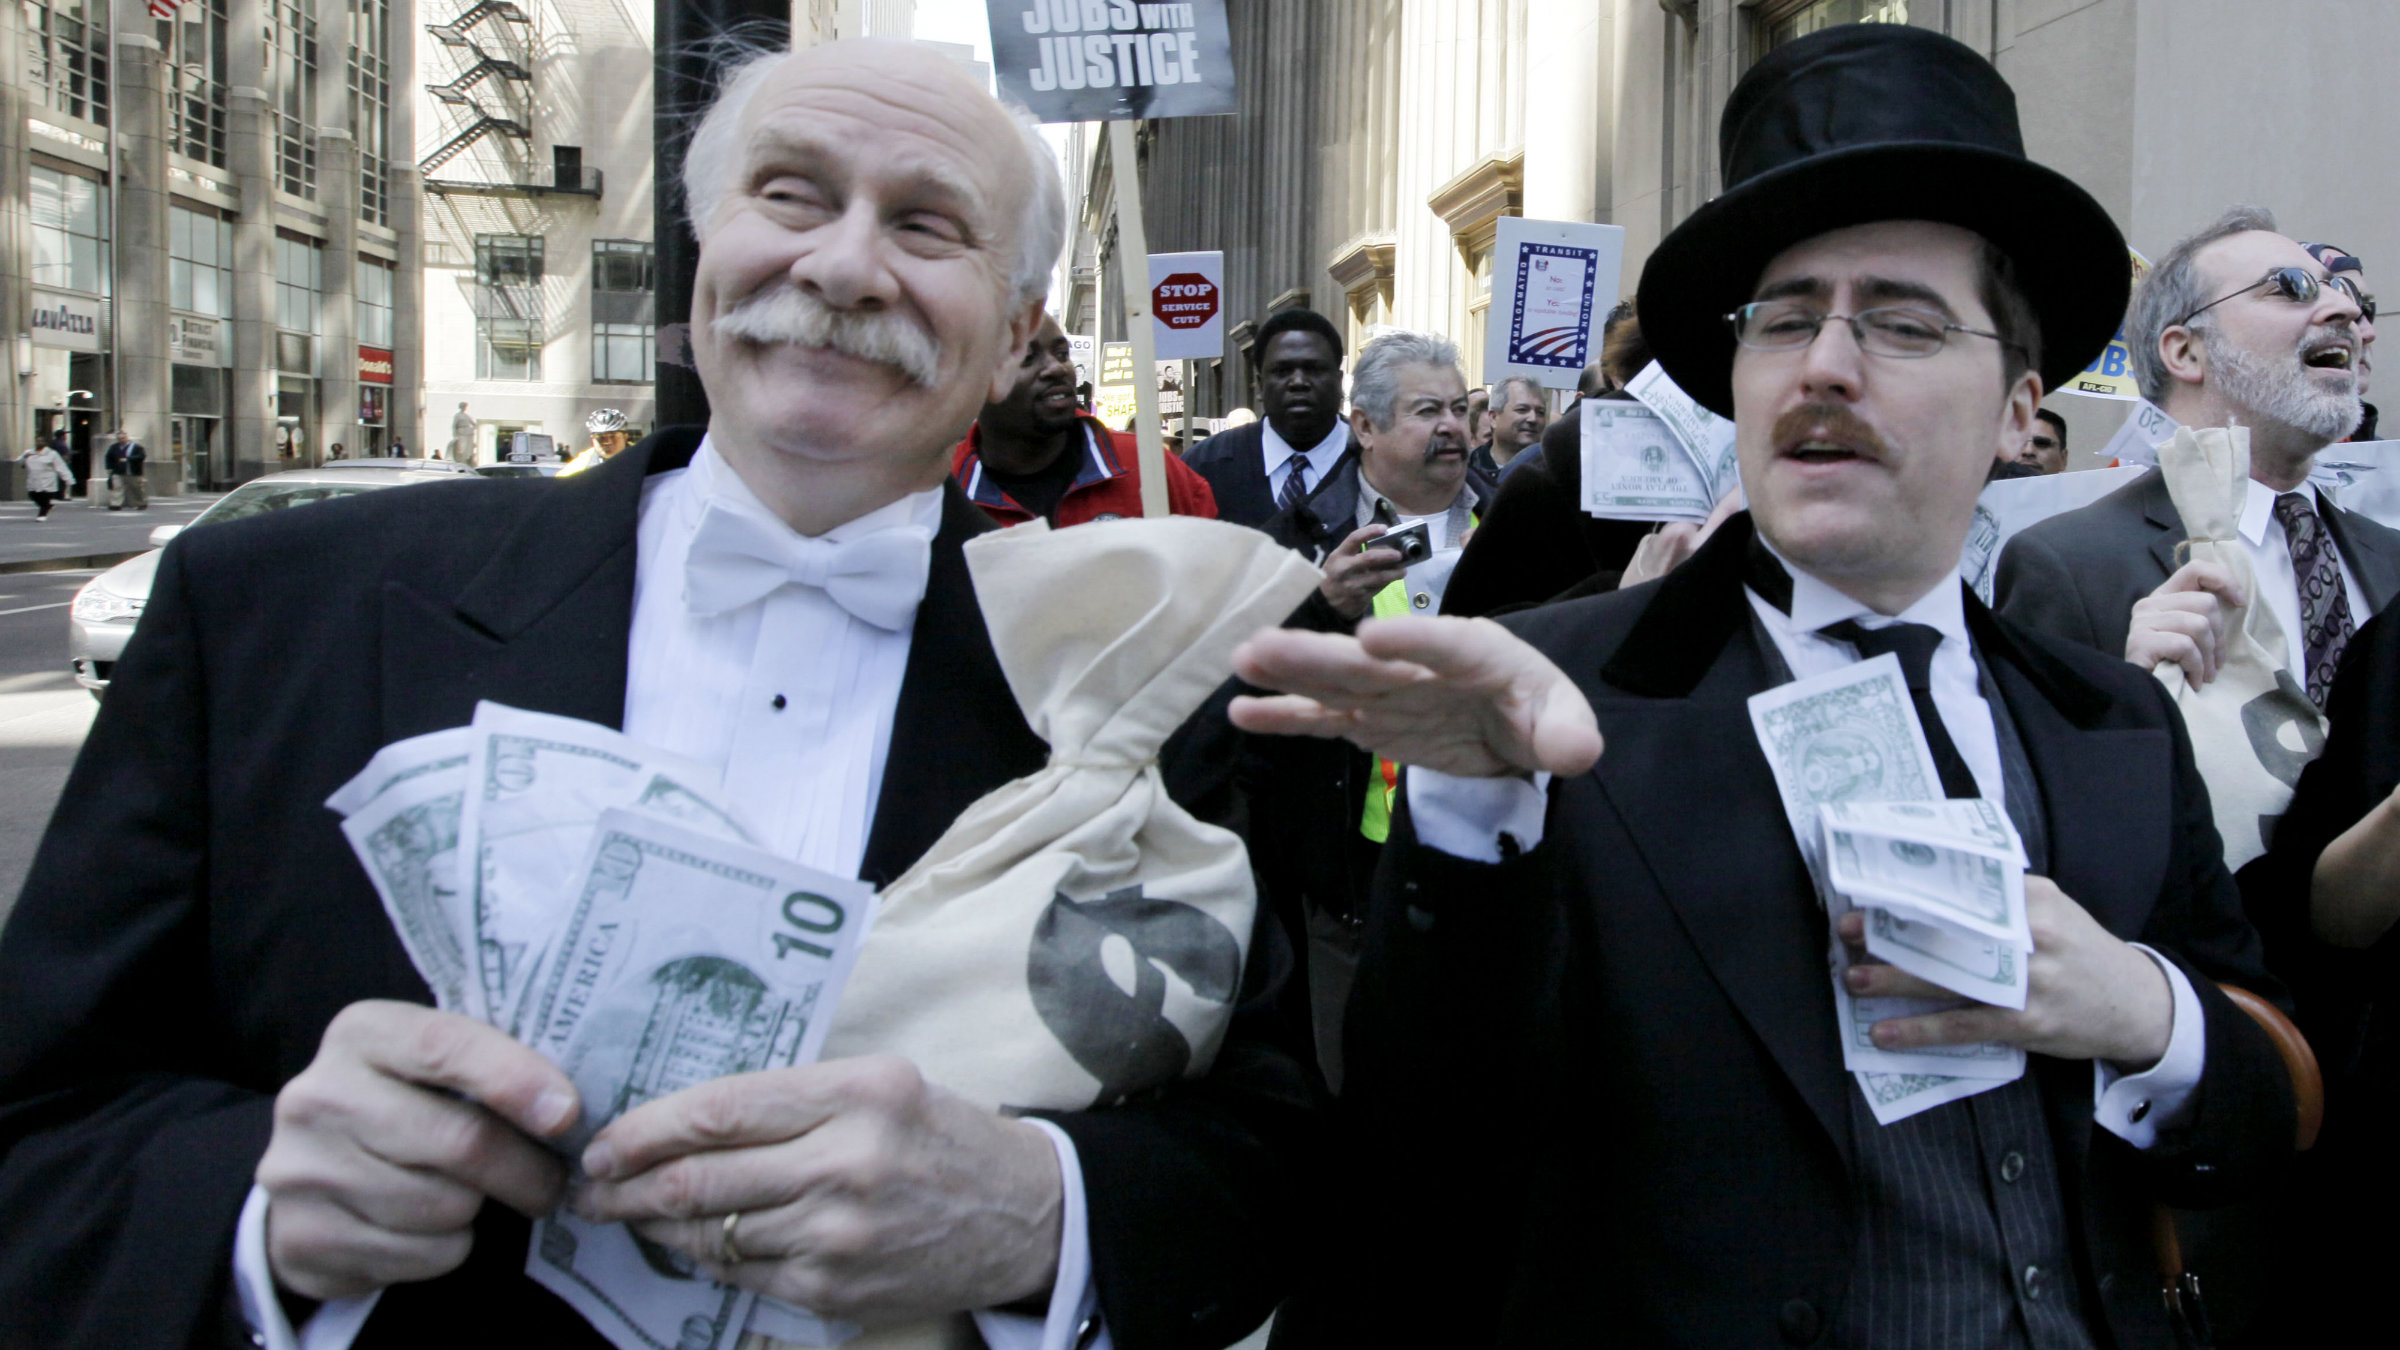 Protesters dressed as Wall Street bankers, march from Goldman Sachs' office to a rally in Chicago's Federal Plaza demanding Wall Street reform.